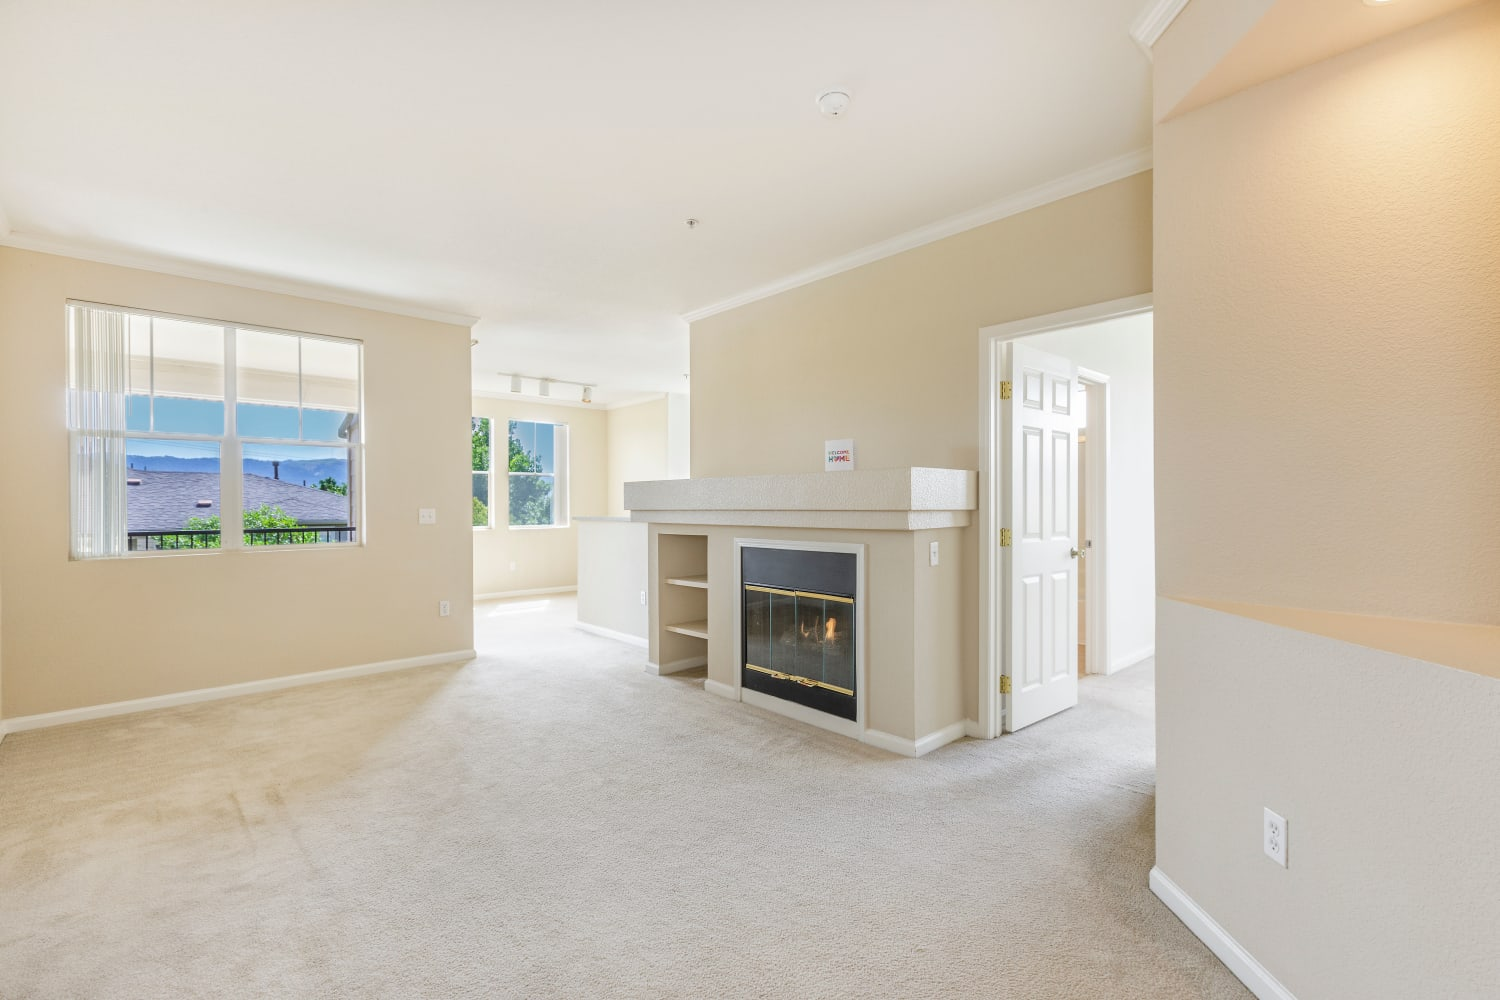 A fireplace in a beautiful open living room floor plan at Park Hacienda Apartments in Pleasanton, California